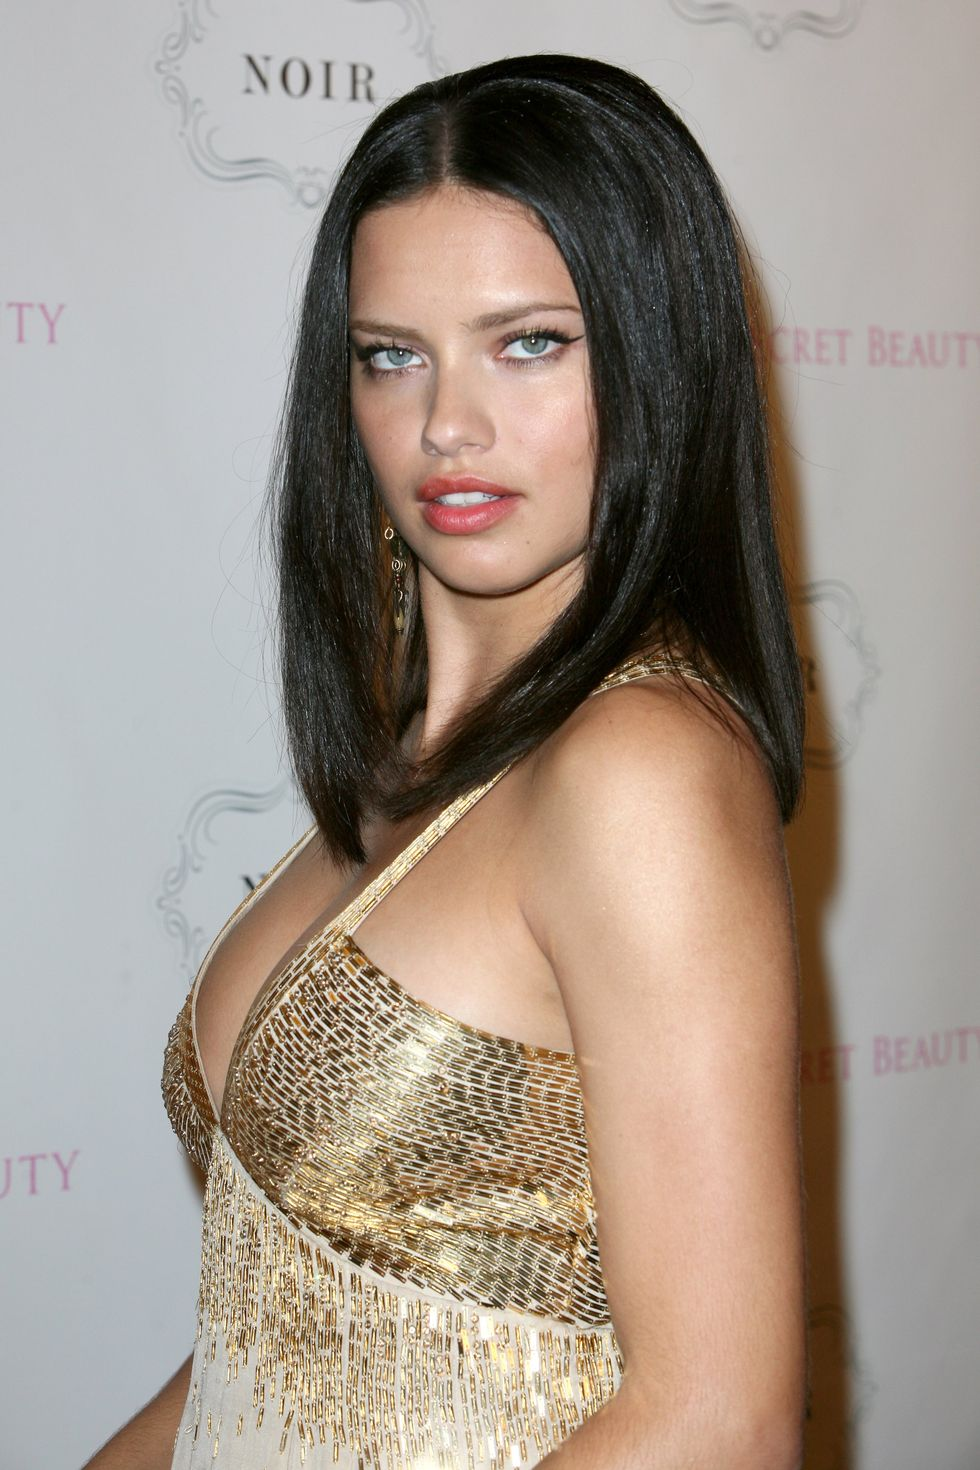 adriana-lima-launches-noir-fragrance-in-new-york-06